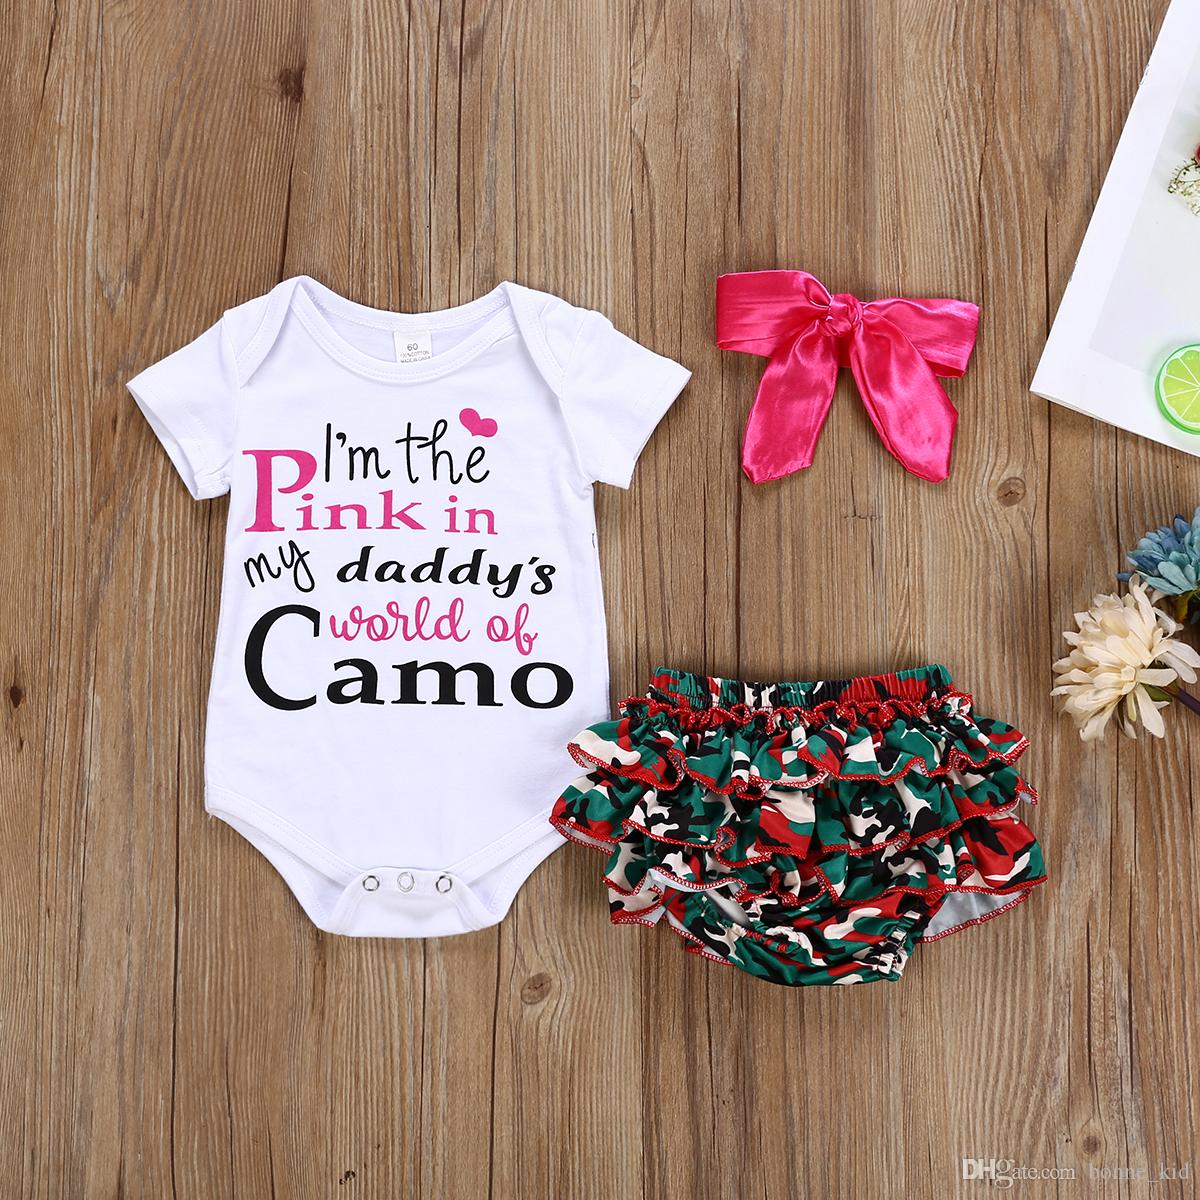 9cb6086e0 Newborn Baby Girls Rompers Camouflage Shorts 2pcs set Letter Print Clothing  I m the pink in my daddy s world of camo baby bodysuit clothing